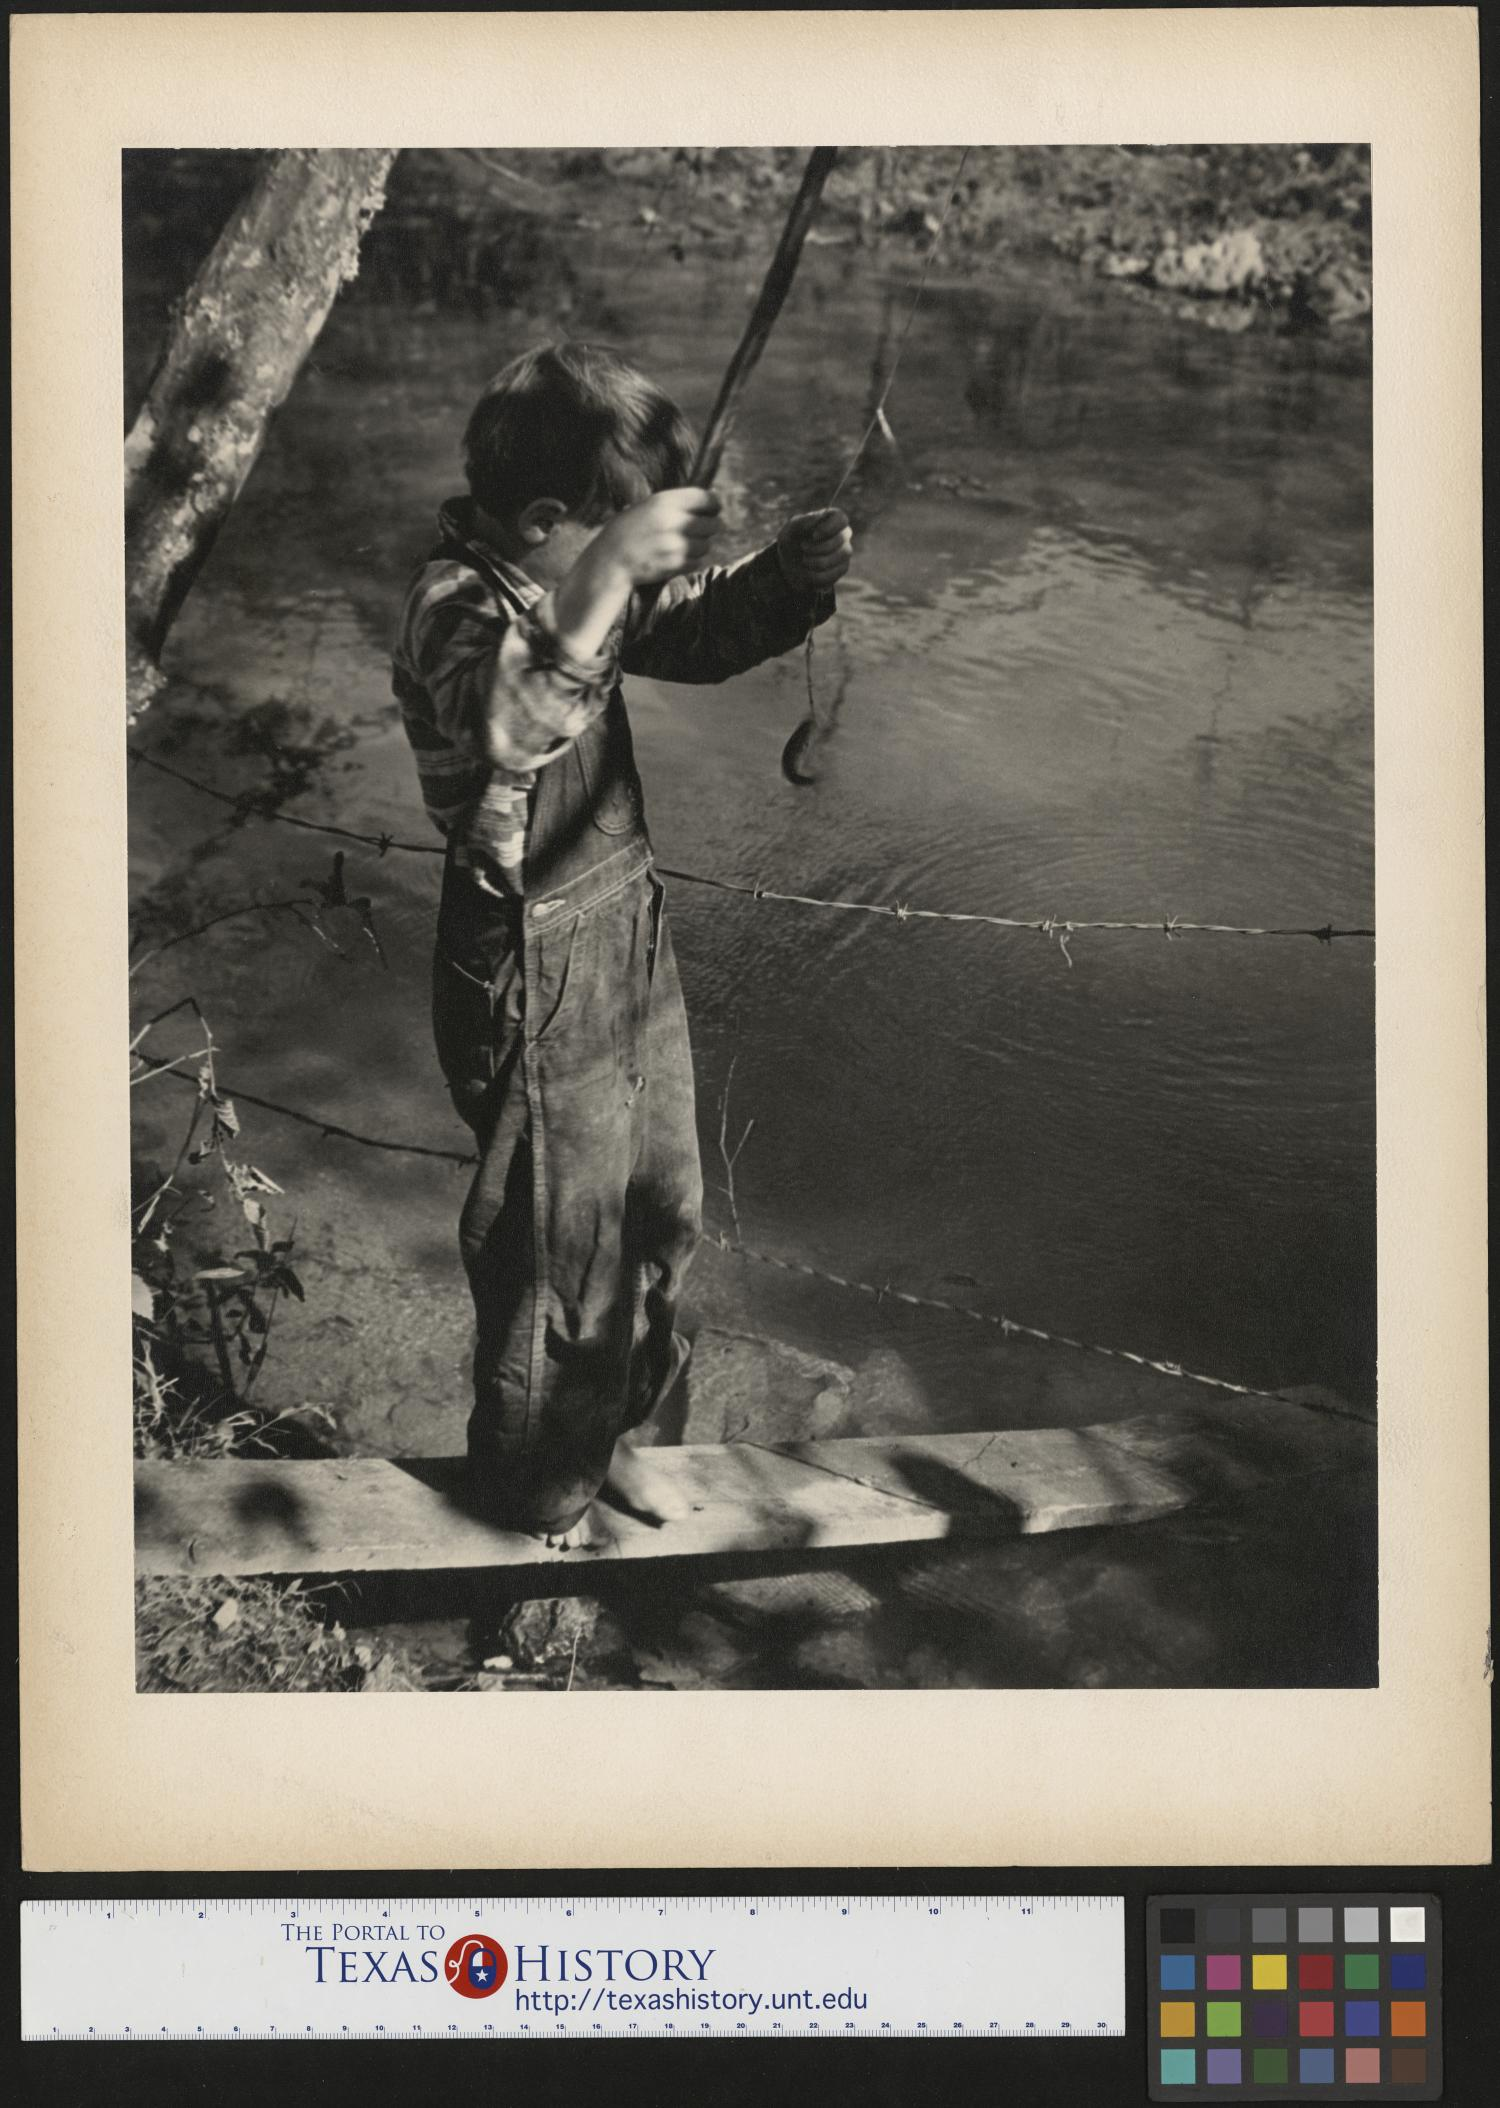 [Boy Catches Fish], Photograph of a boy fishing. In this image a boy named Gene is wearing overalls and standing barefoot on a plank partially submerged in the water. The boy is holding a fishing pole with a fish at the end of the line. Photo by: Joe Clark, HBSS.,